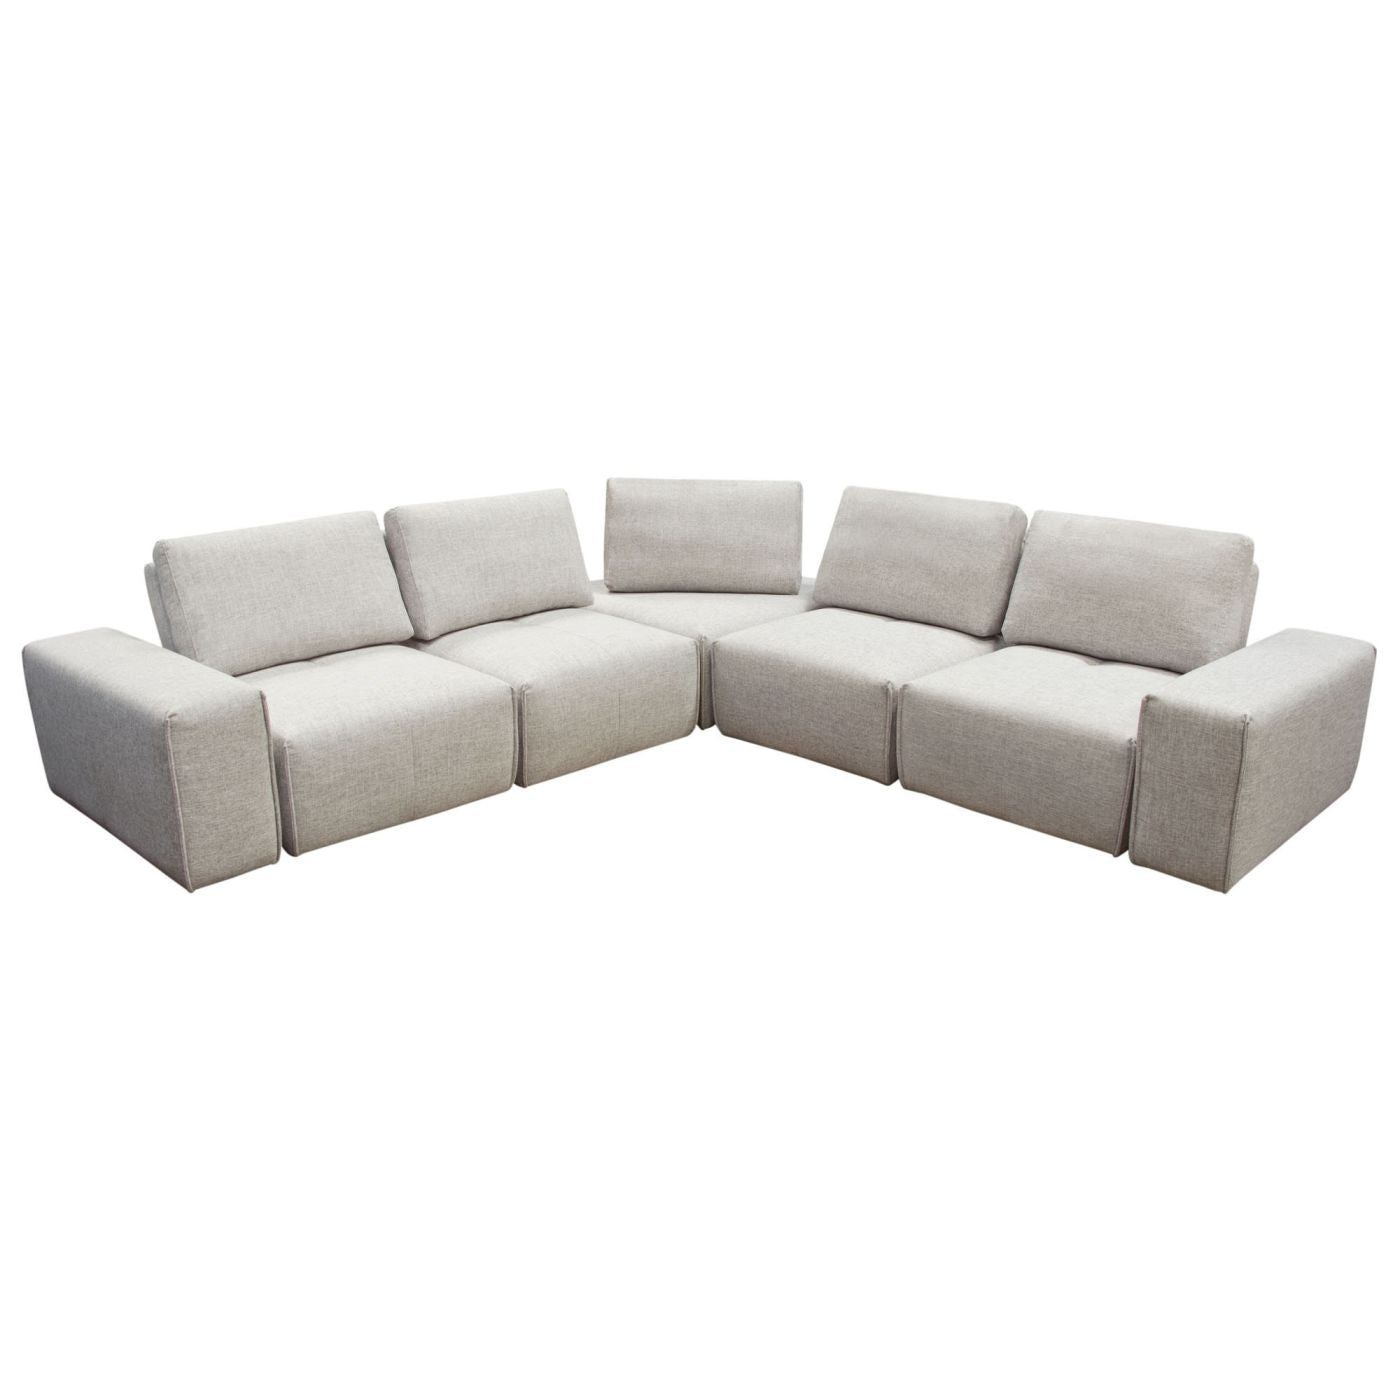 Buy Diamond Sofa JAZZ4AC1SC2ARLB Jazz Modular 5-Seater Corner Sectional  with Adjustable Backrests in Light Brown Fabric at Contemporary Furniture  ...